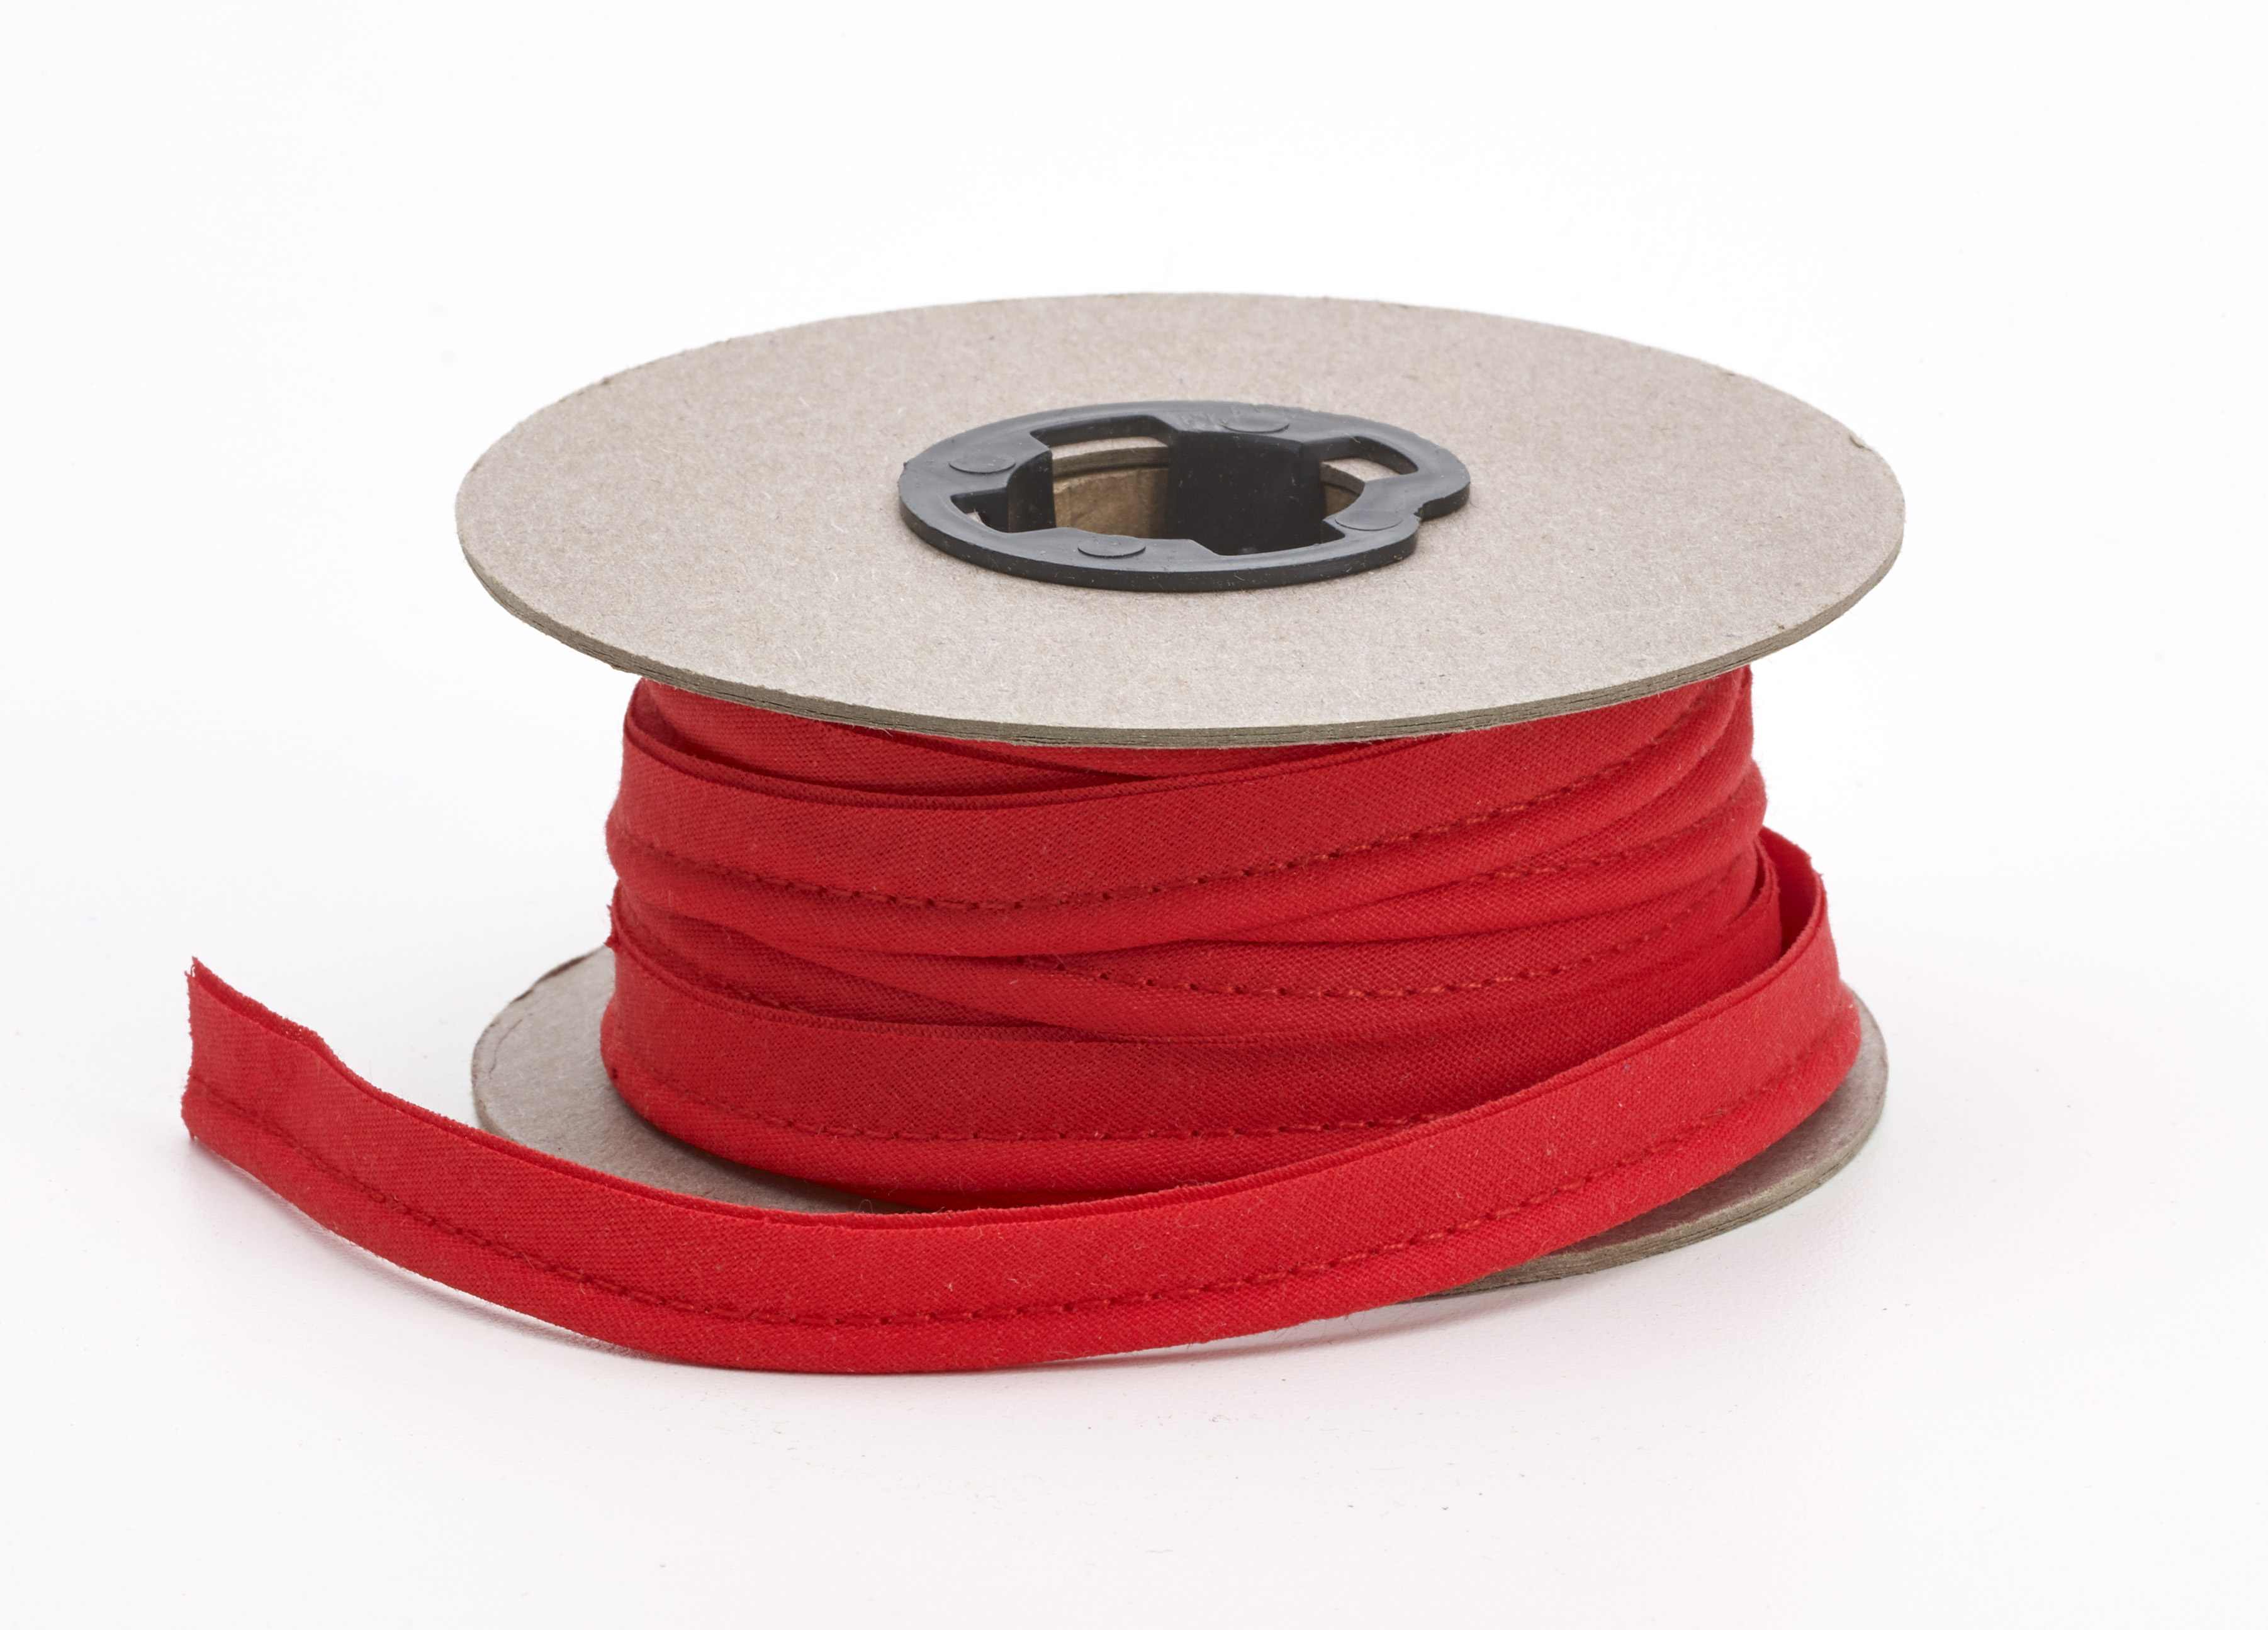 62-050-9703-15, Broadcloth cord piping, 1/2 Wide, 15 yds, Red, Mutual Industries